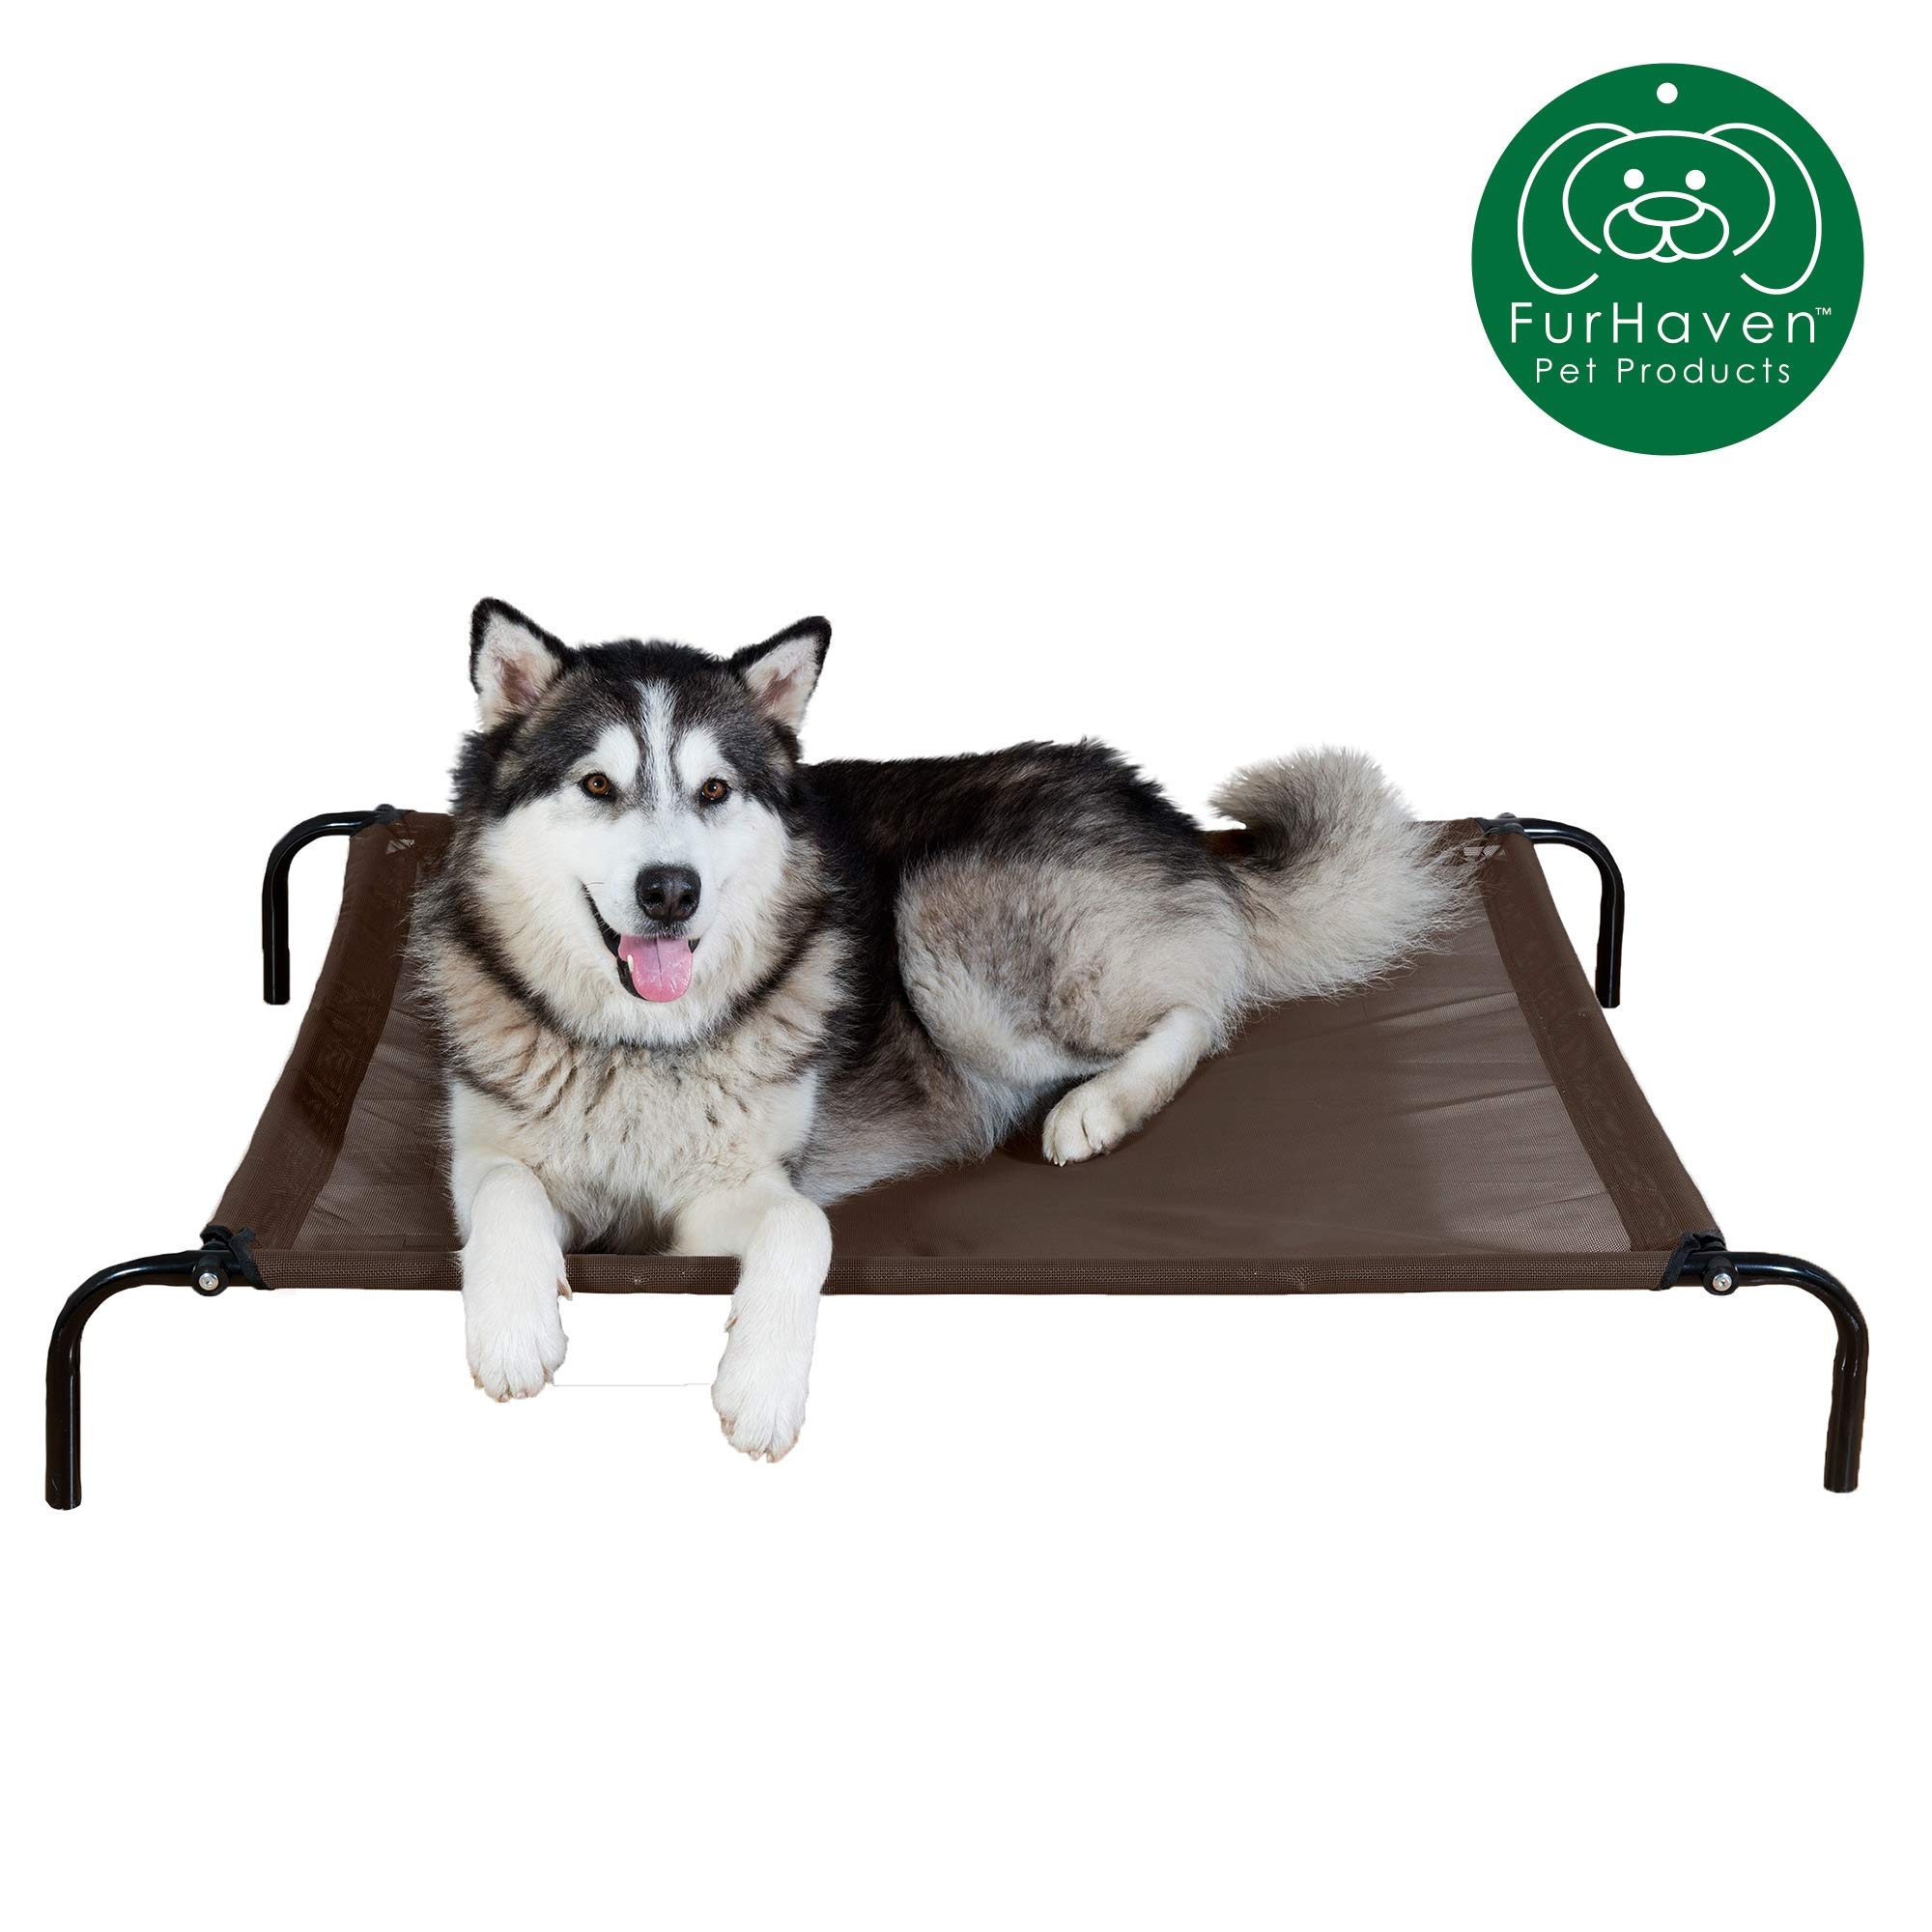 Furhaven Pet Dog Bed   Mold & Mildew Resistant Breathable Cooling Mesh Elevated Pet Cot Bed, Pet Blanket, & Self-Warming Pet Mat Insert for Dogs & Cats - Available in Multiple Colors & Sizes